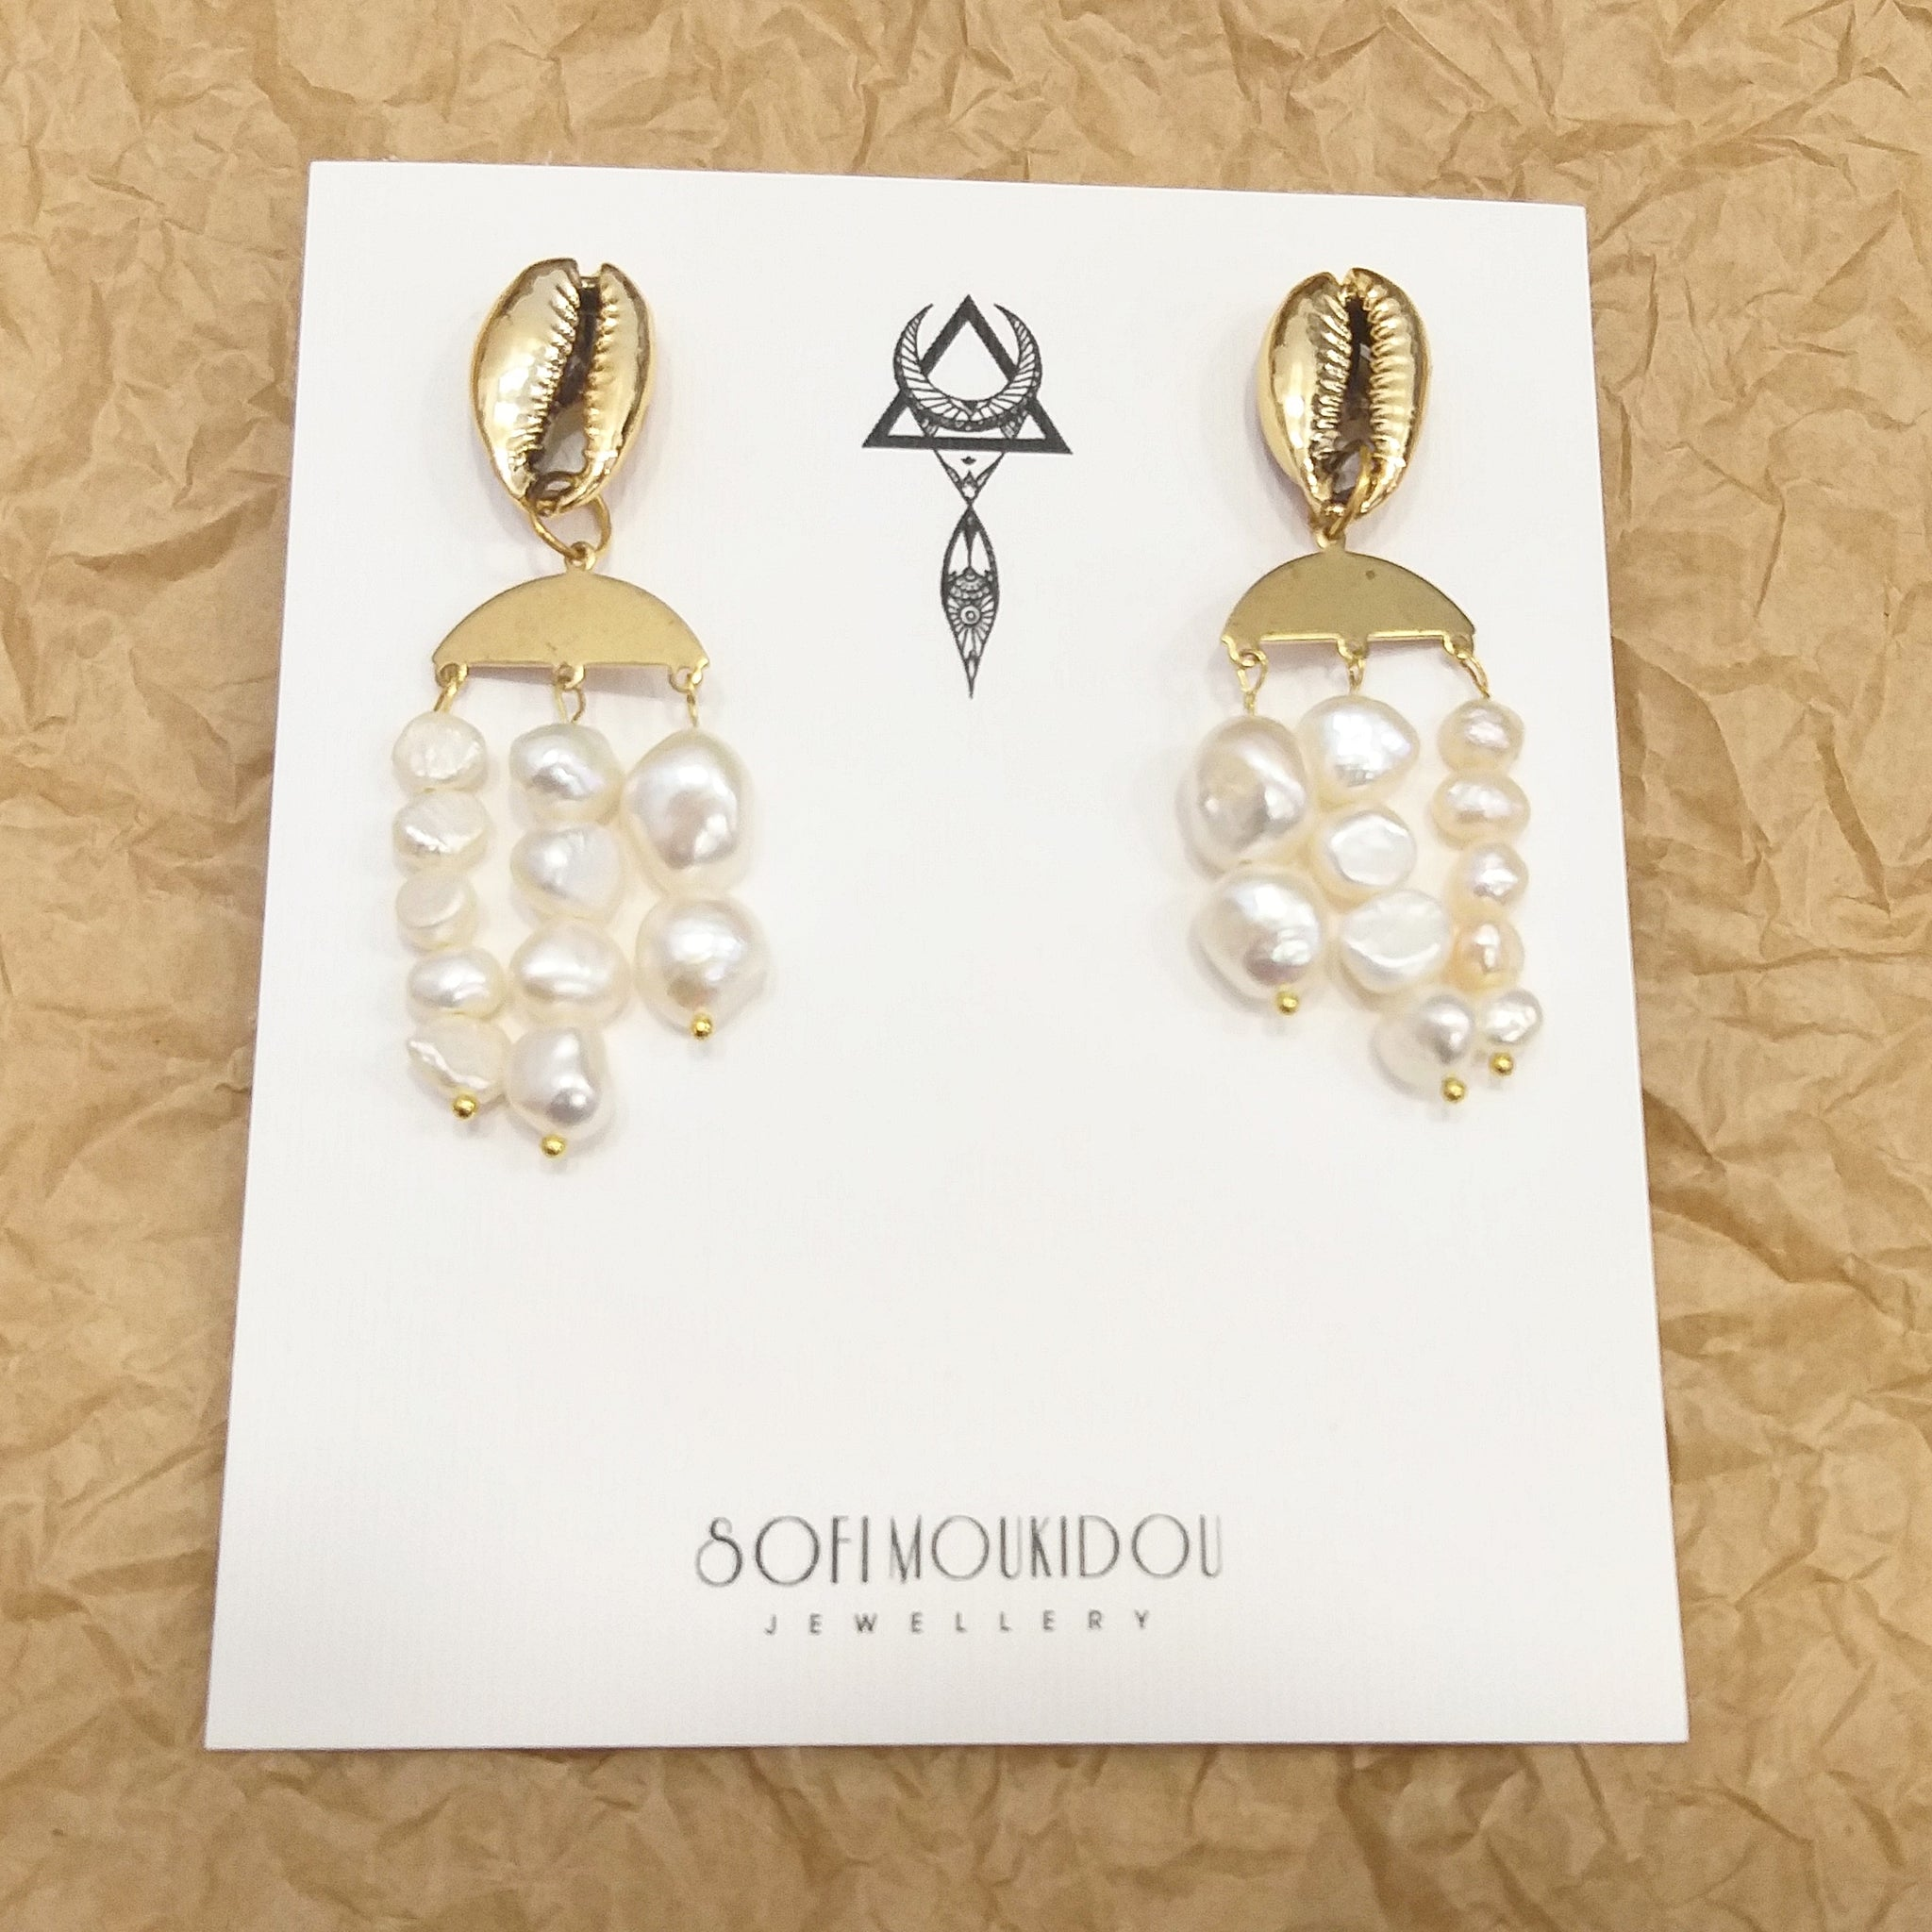 Sea treasures earrings - Sofi Moukidou